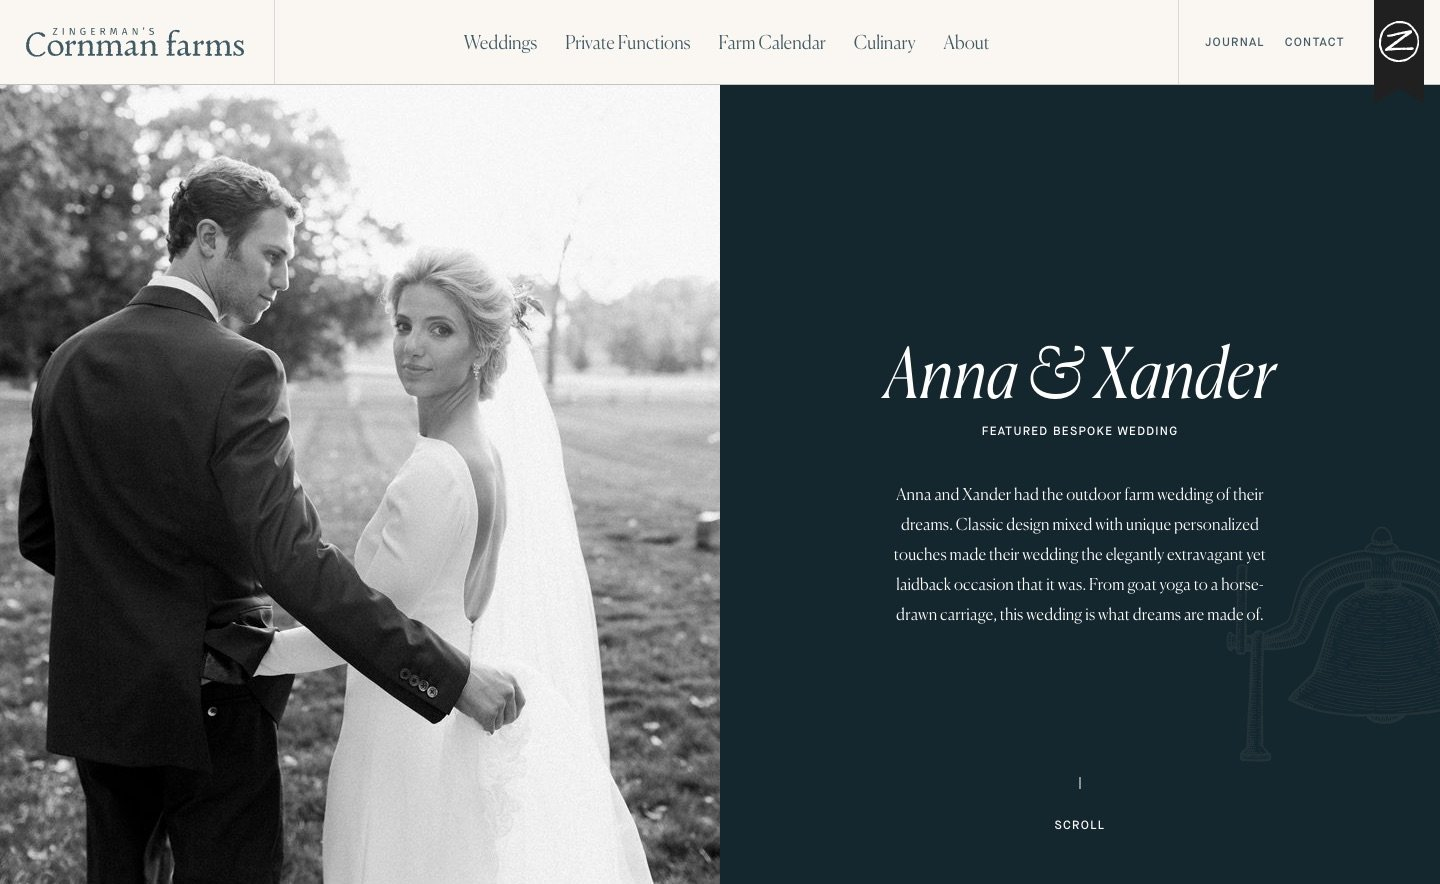 Screen shot of Featured Wedding page